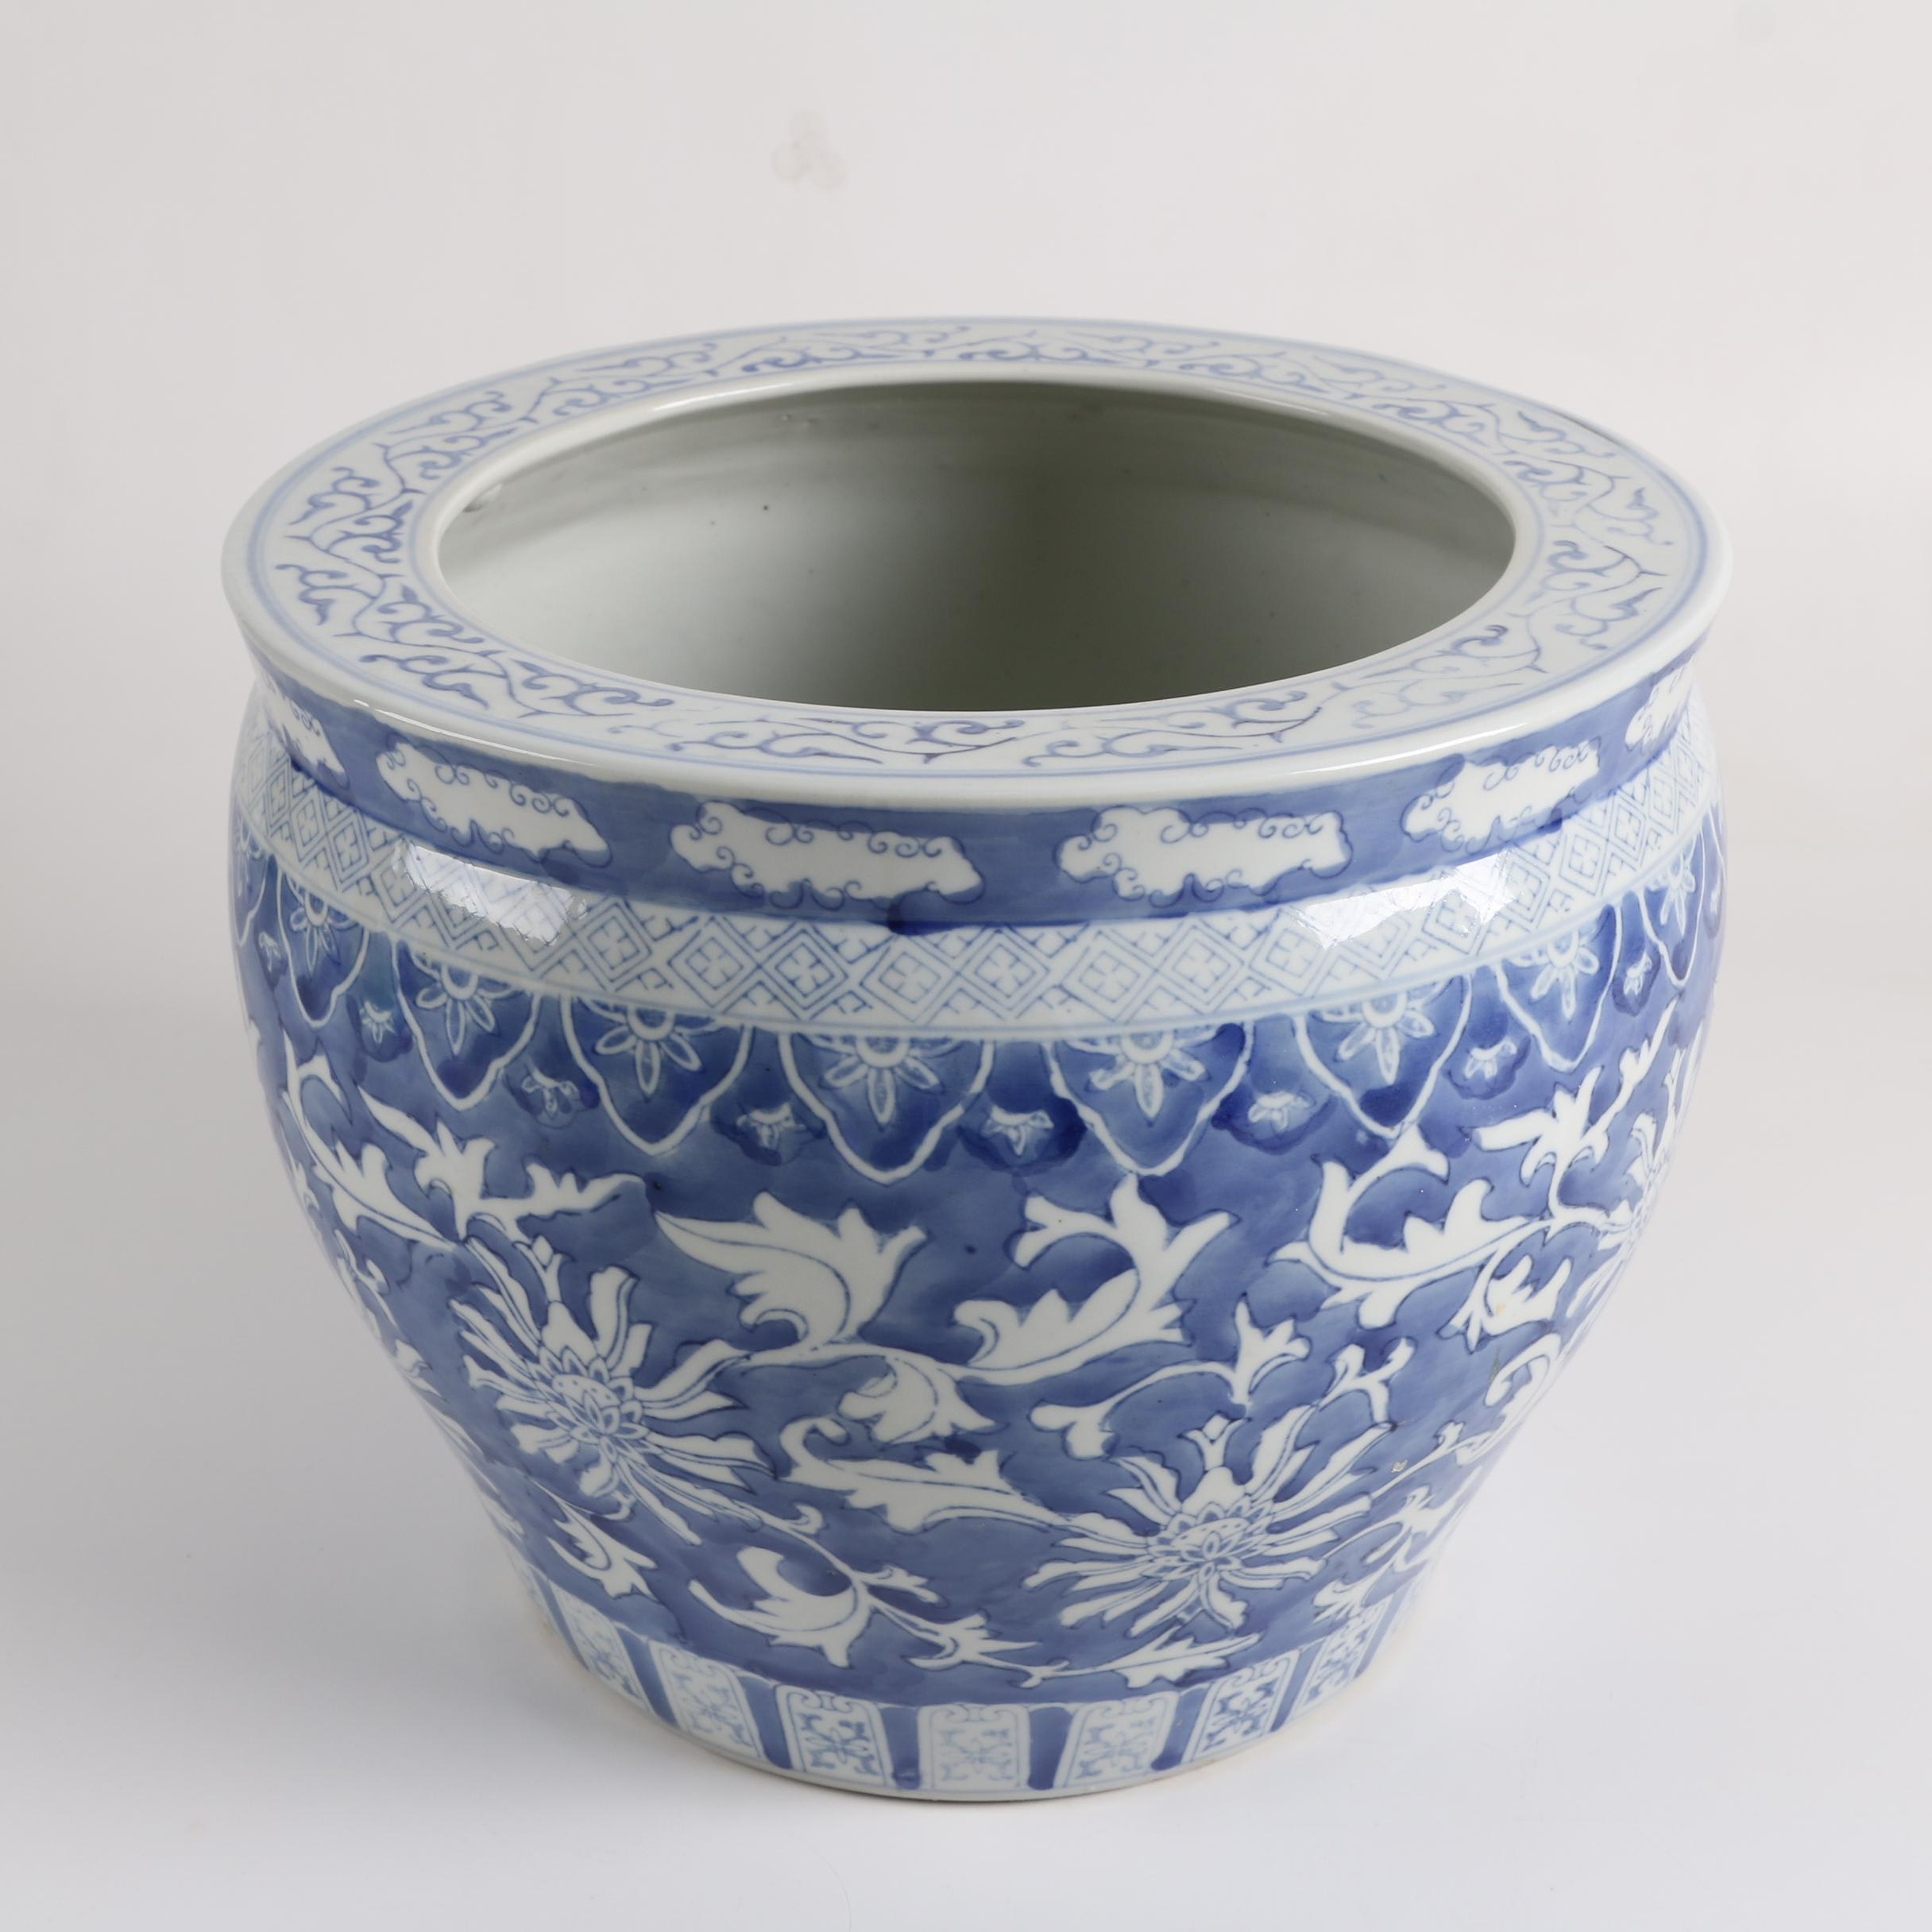 Blue and White Chinoiserie Porcelain Jardinière